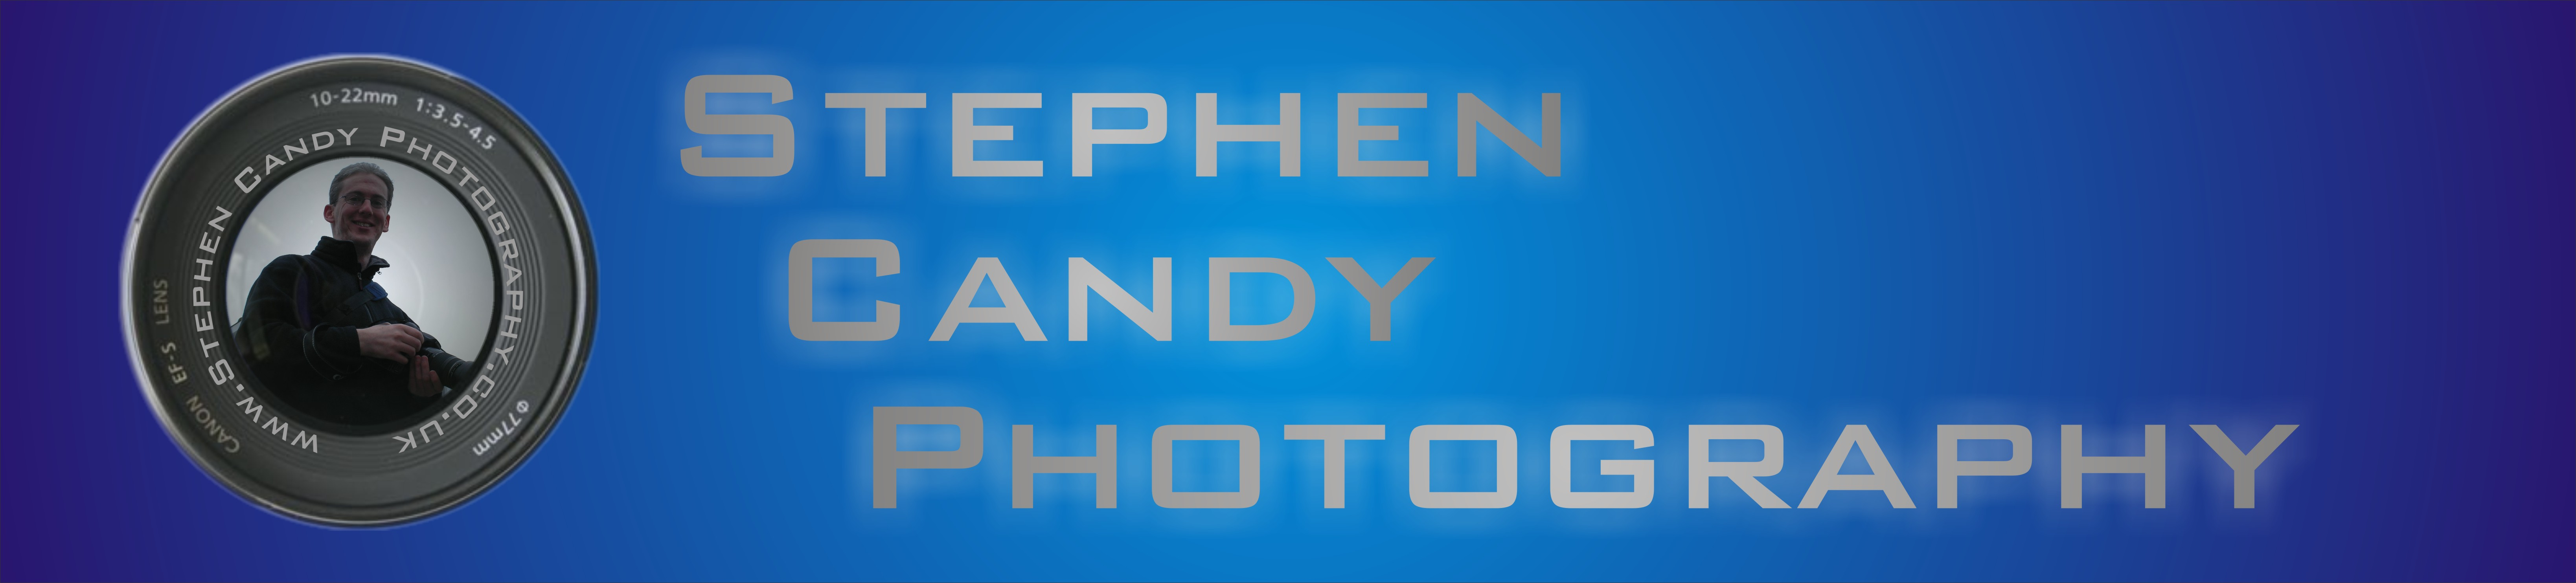 Stephen Candy Photography